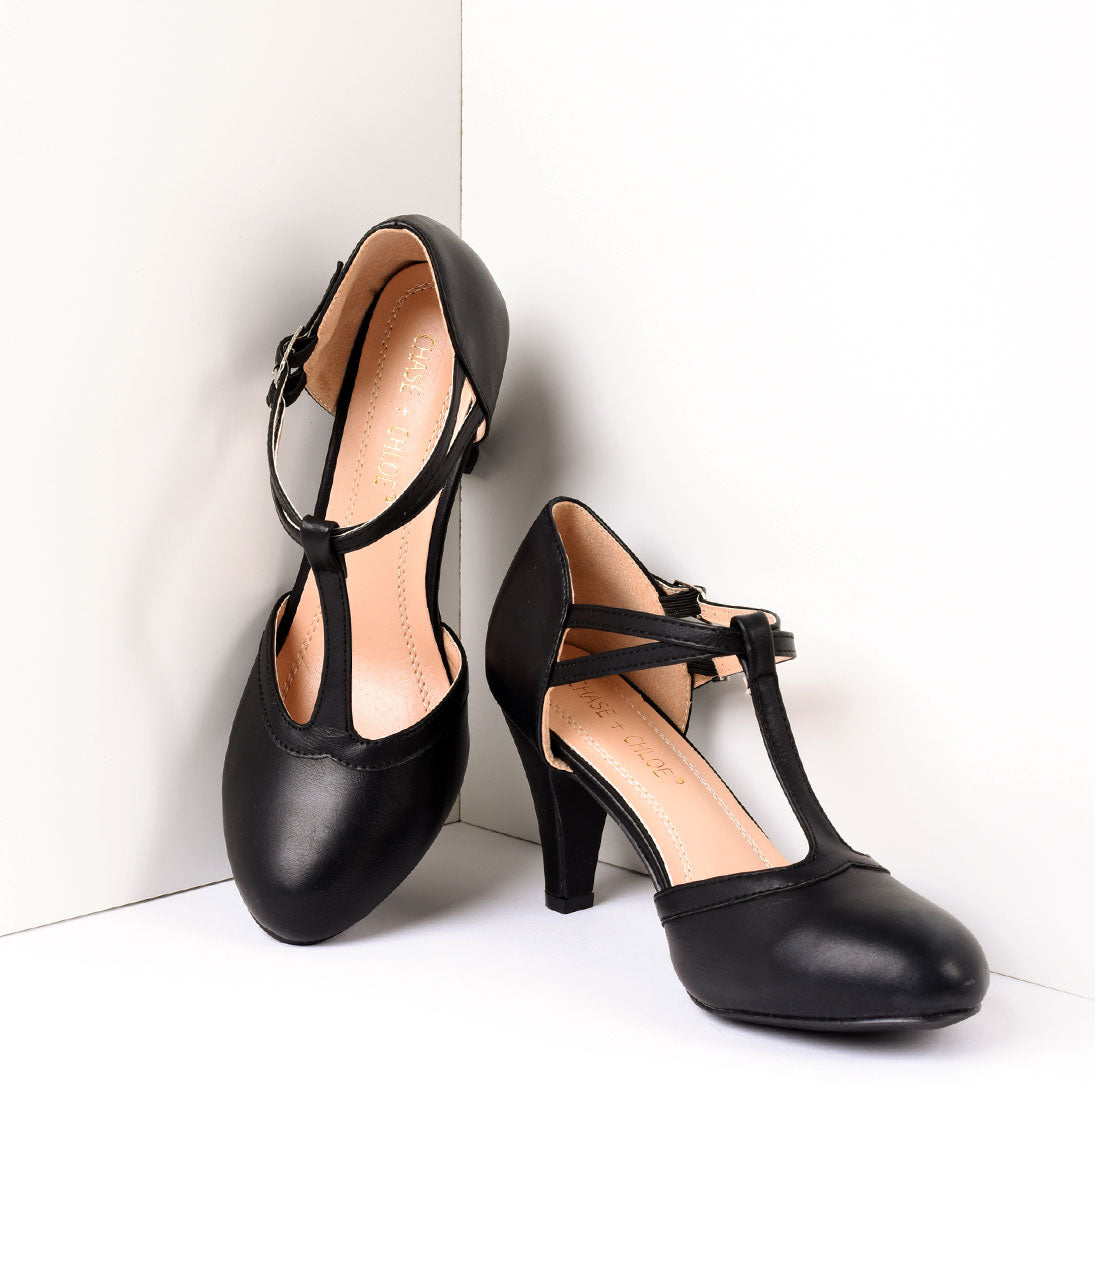 What Did Women Wear in the 1930s? 1930s Fashion Guide Vintage Style Black Leatherette Round Toe T-Strap Heels $48.00 AT vintagedancer.com